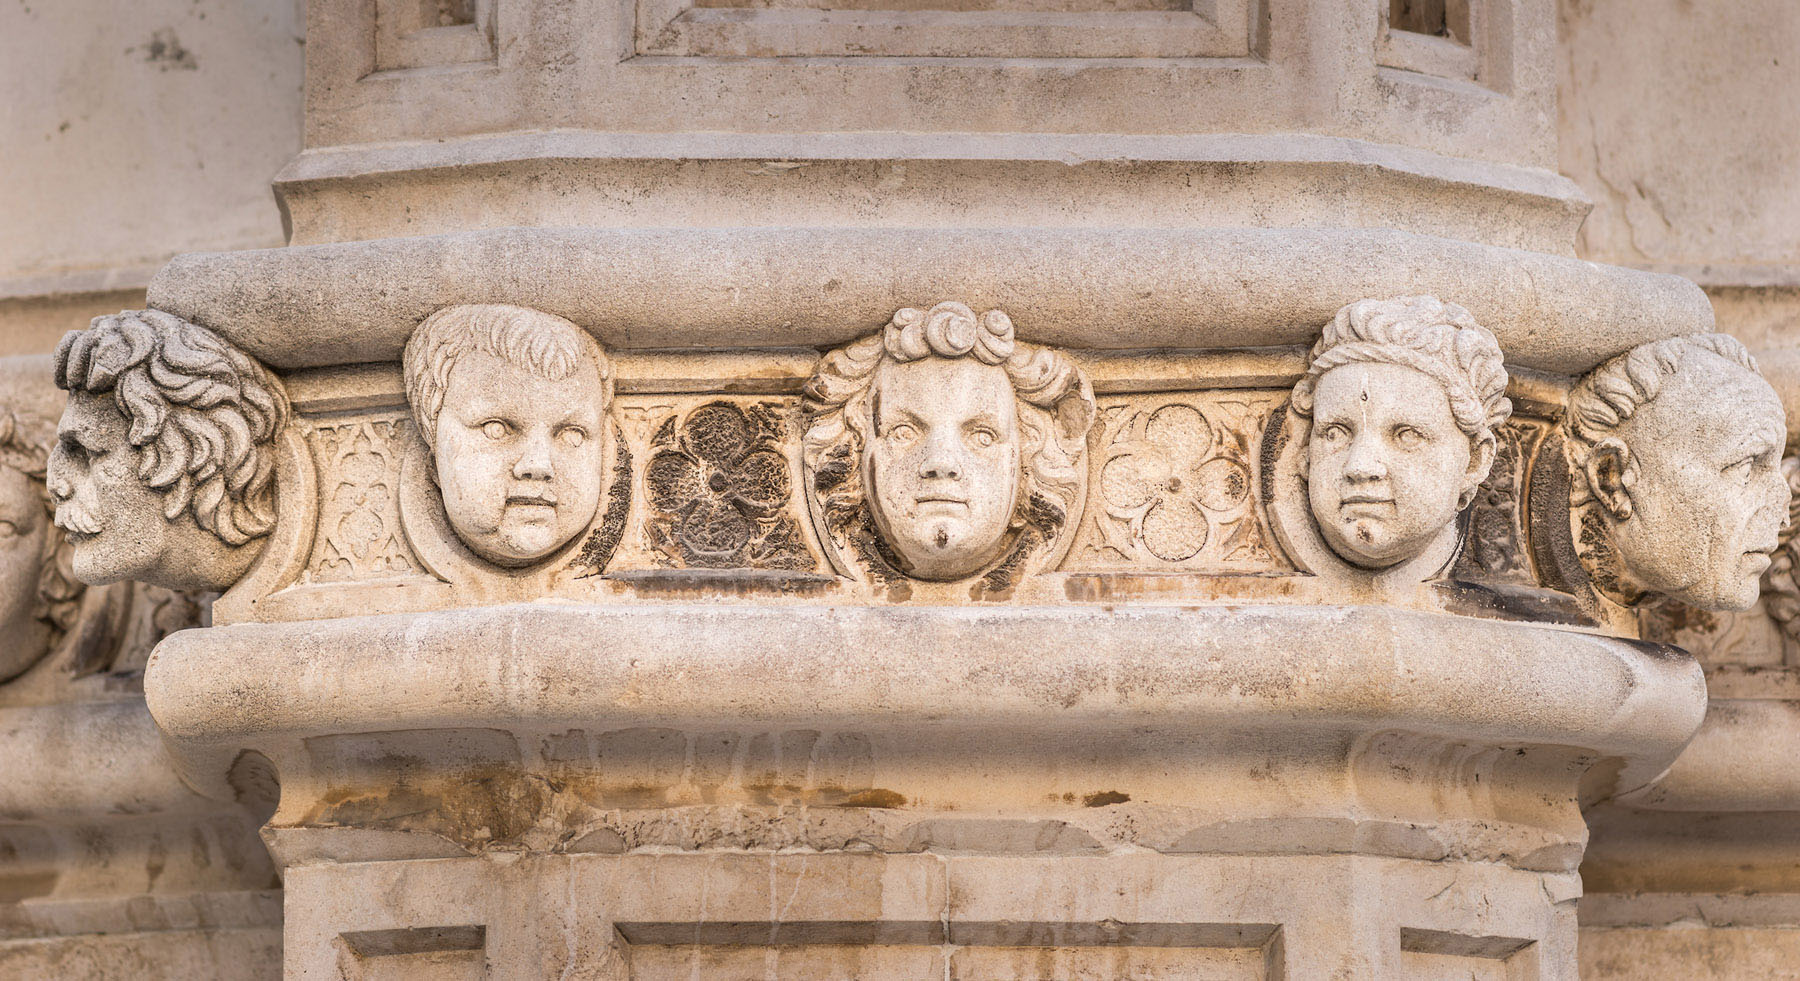 Stone faces on the exterior wall of the St. James Cathedral in Sibenik, Croatia.